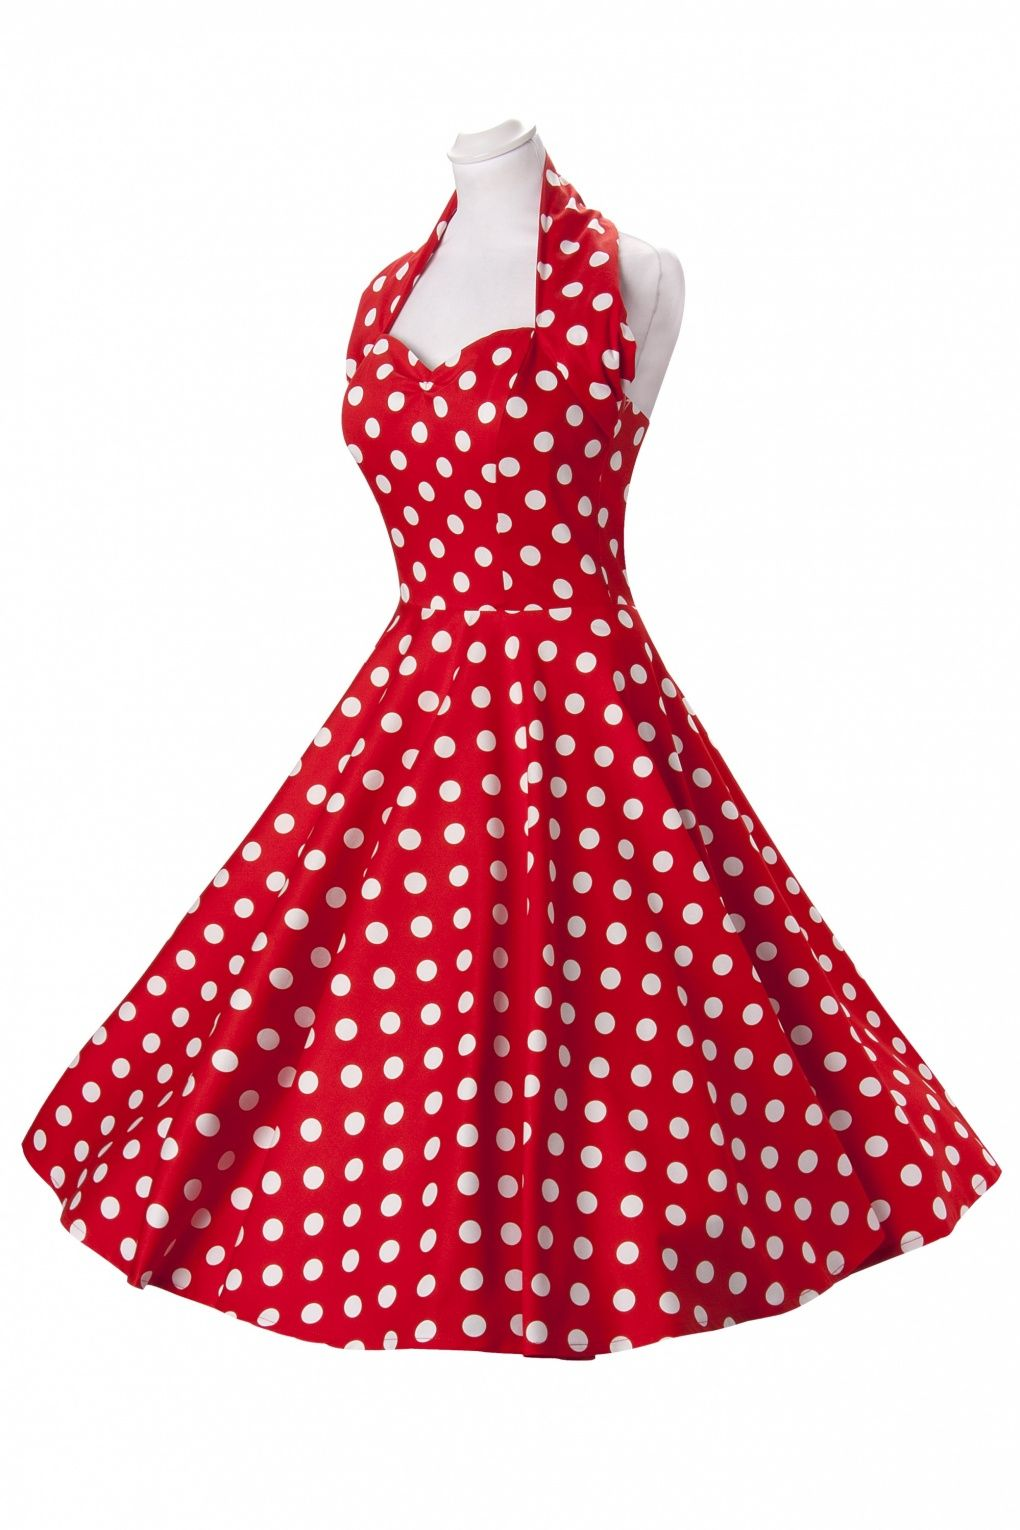 c424e6add34a 50s Retro halter Polka Dot Red White swing dress cotton sateen in ...